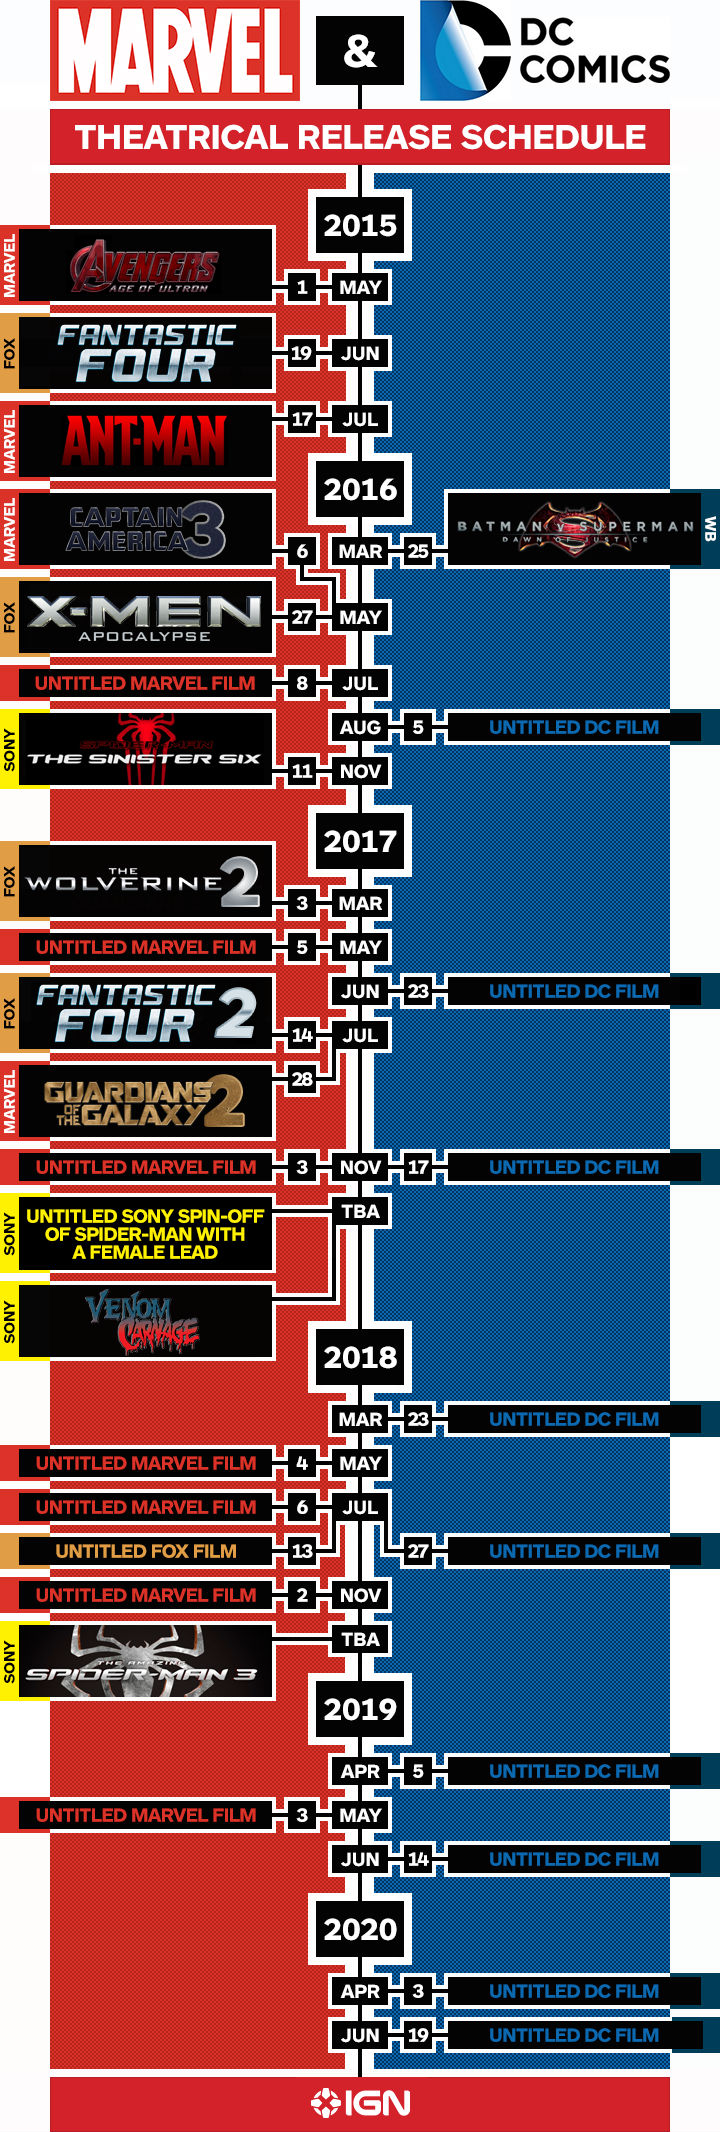 MOVIES: Marvel and DC movie release dates chart   W3RKSHOP